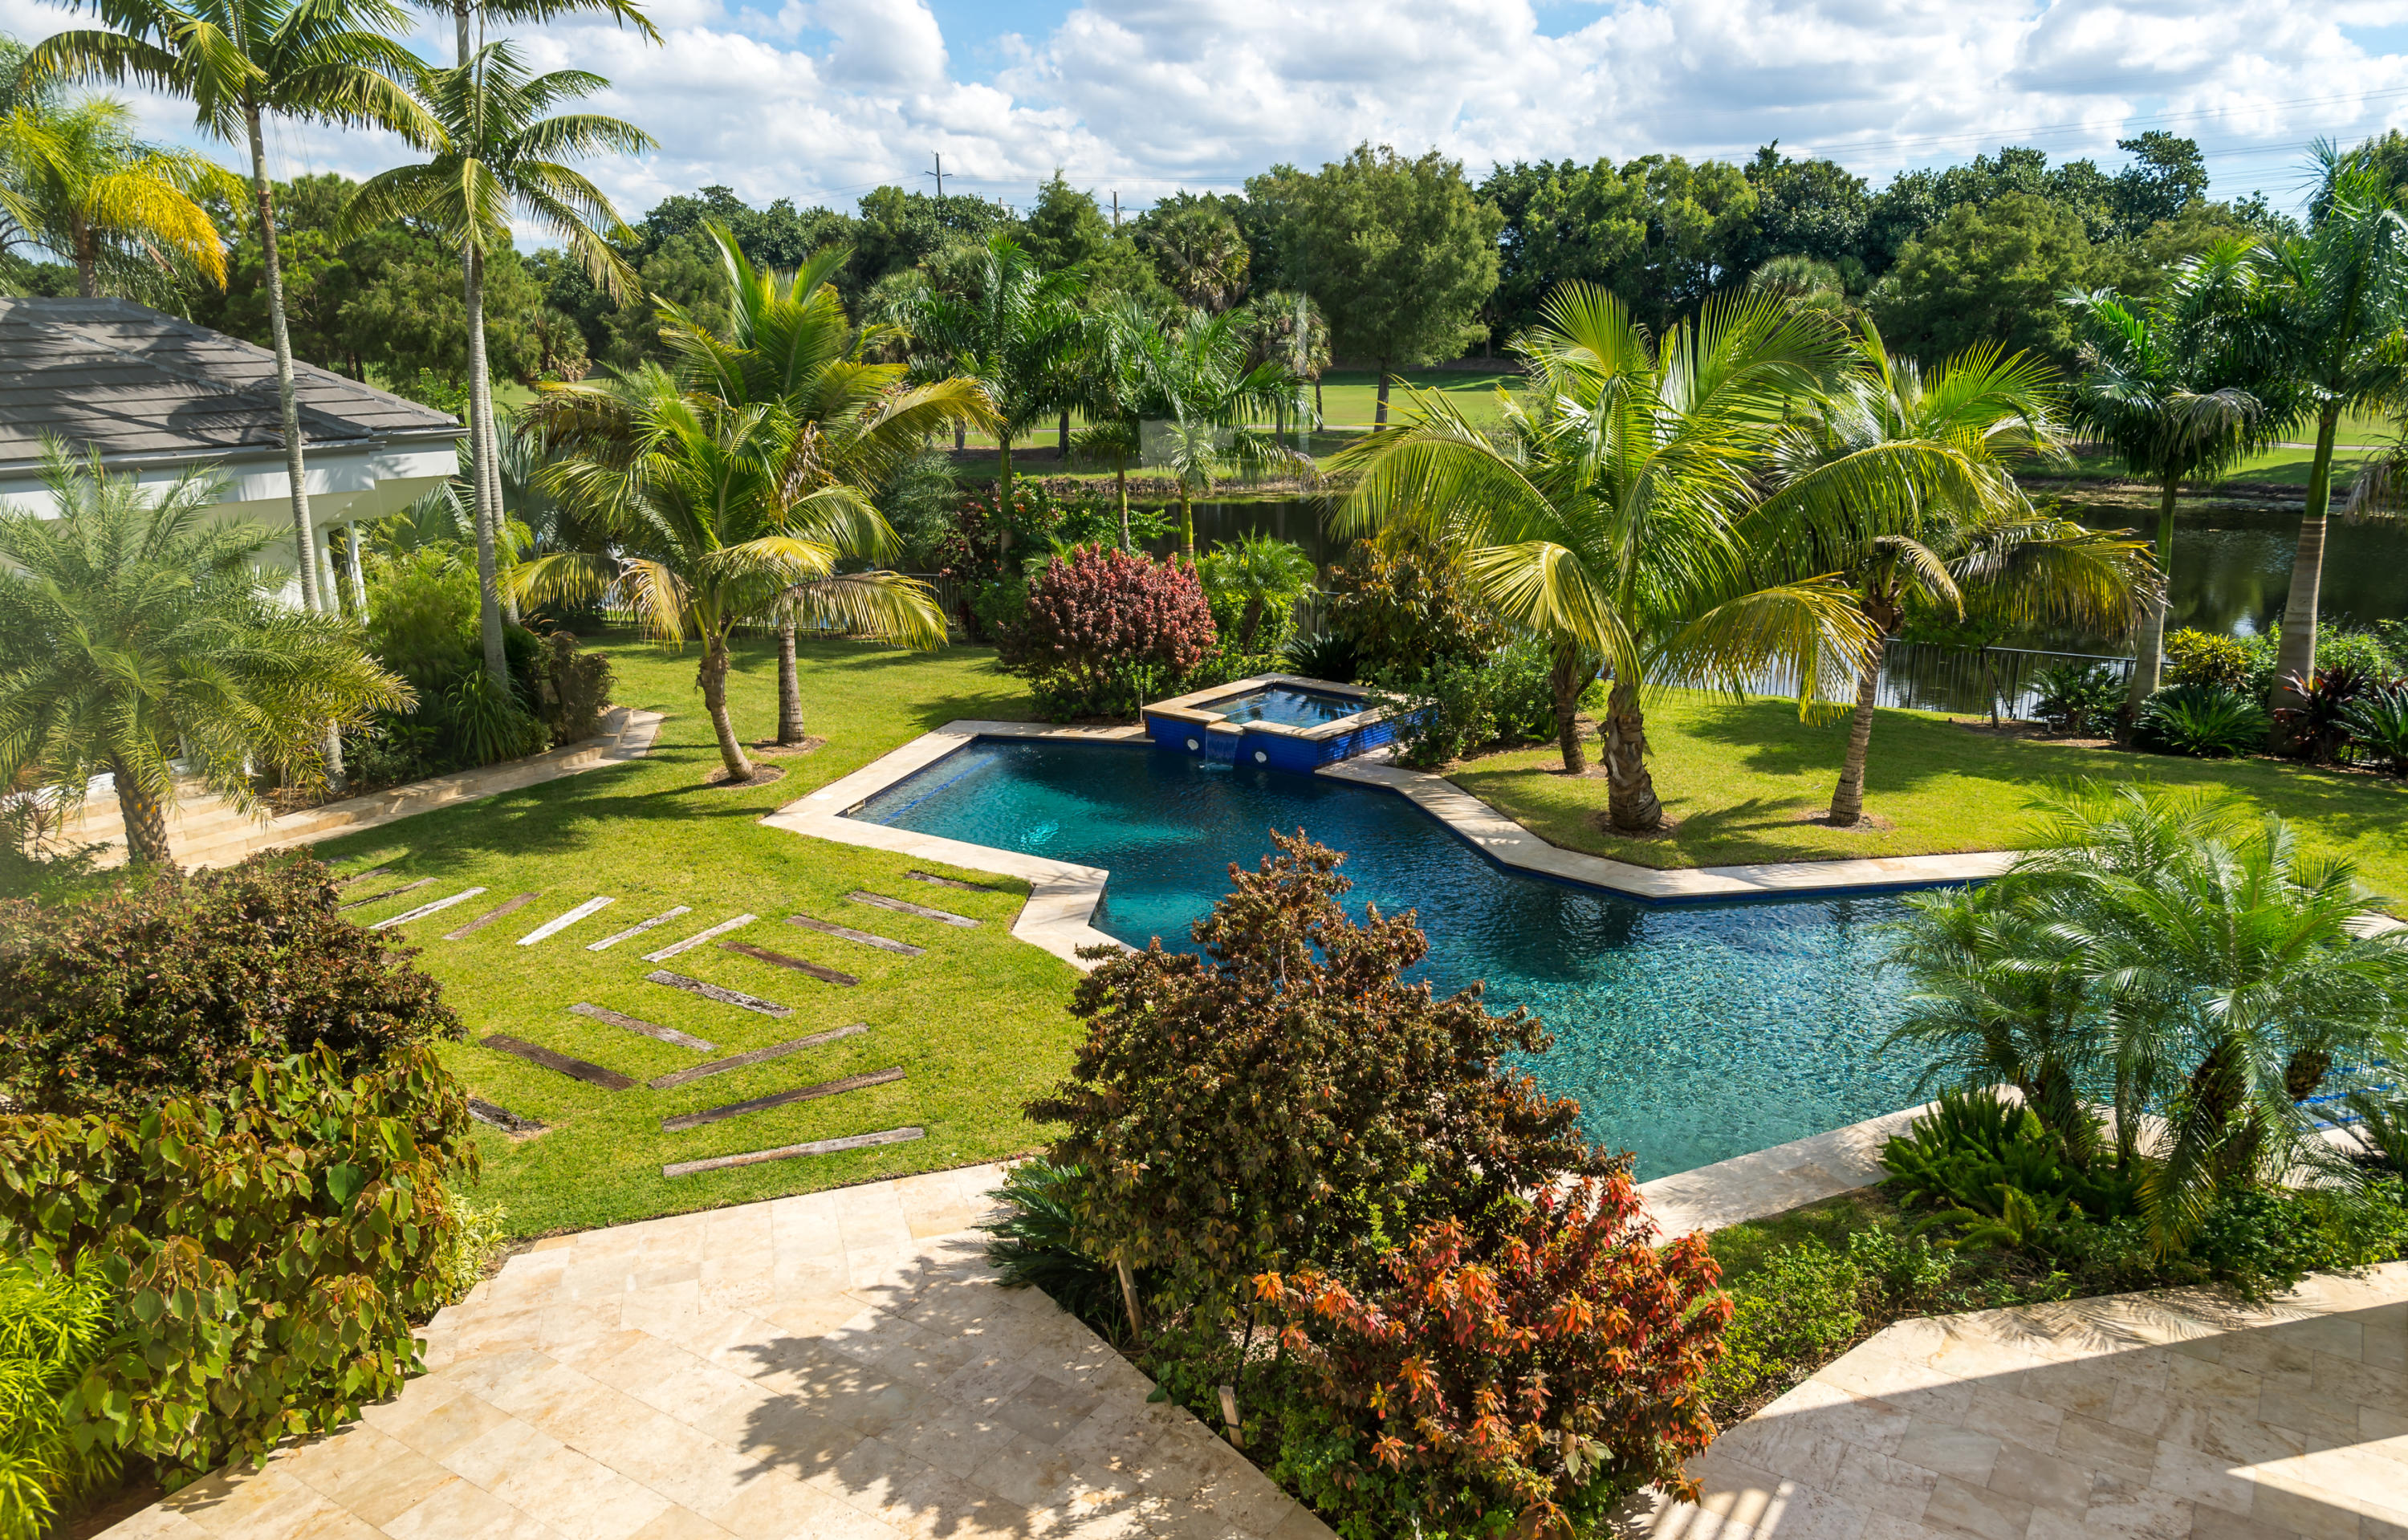 2860 Long Meadow Drive, Wellington, Florida 33414, 5 Bedrooms Bedrooms, ,5.2 BathroomsBathrooms,Single Family,For Sale,Palm Beach Polo & Country Club,Long Meadow,RX-9985895